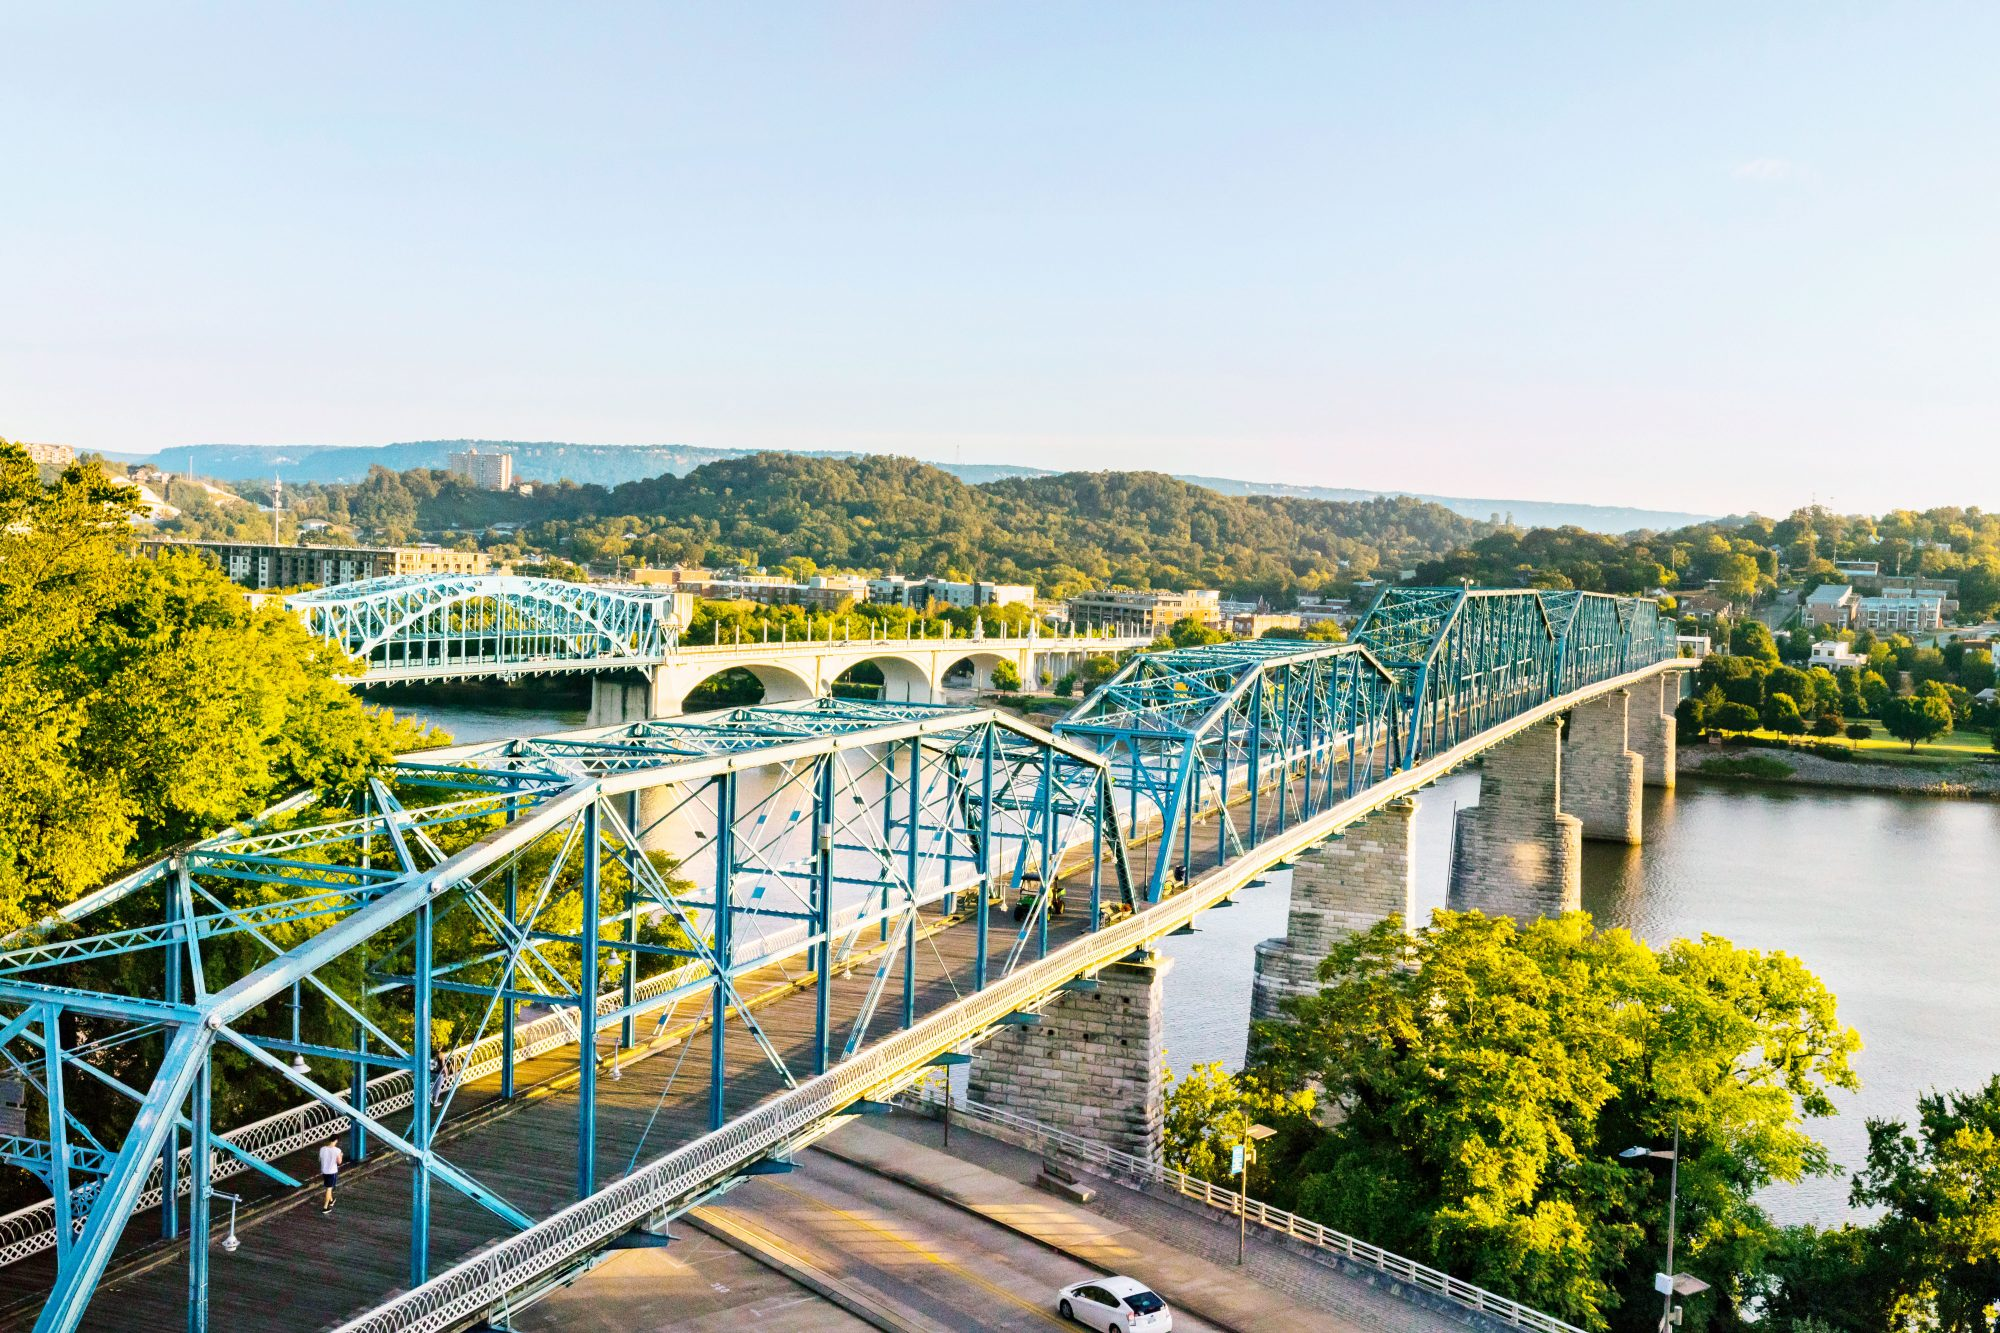 The Tennessee River in Chattanooga